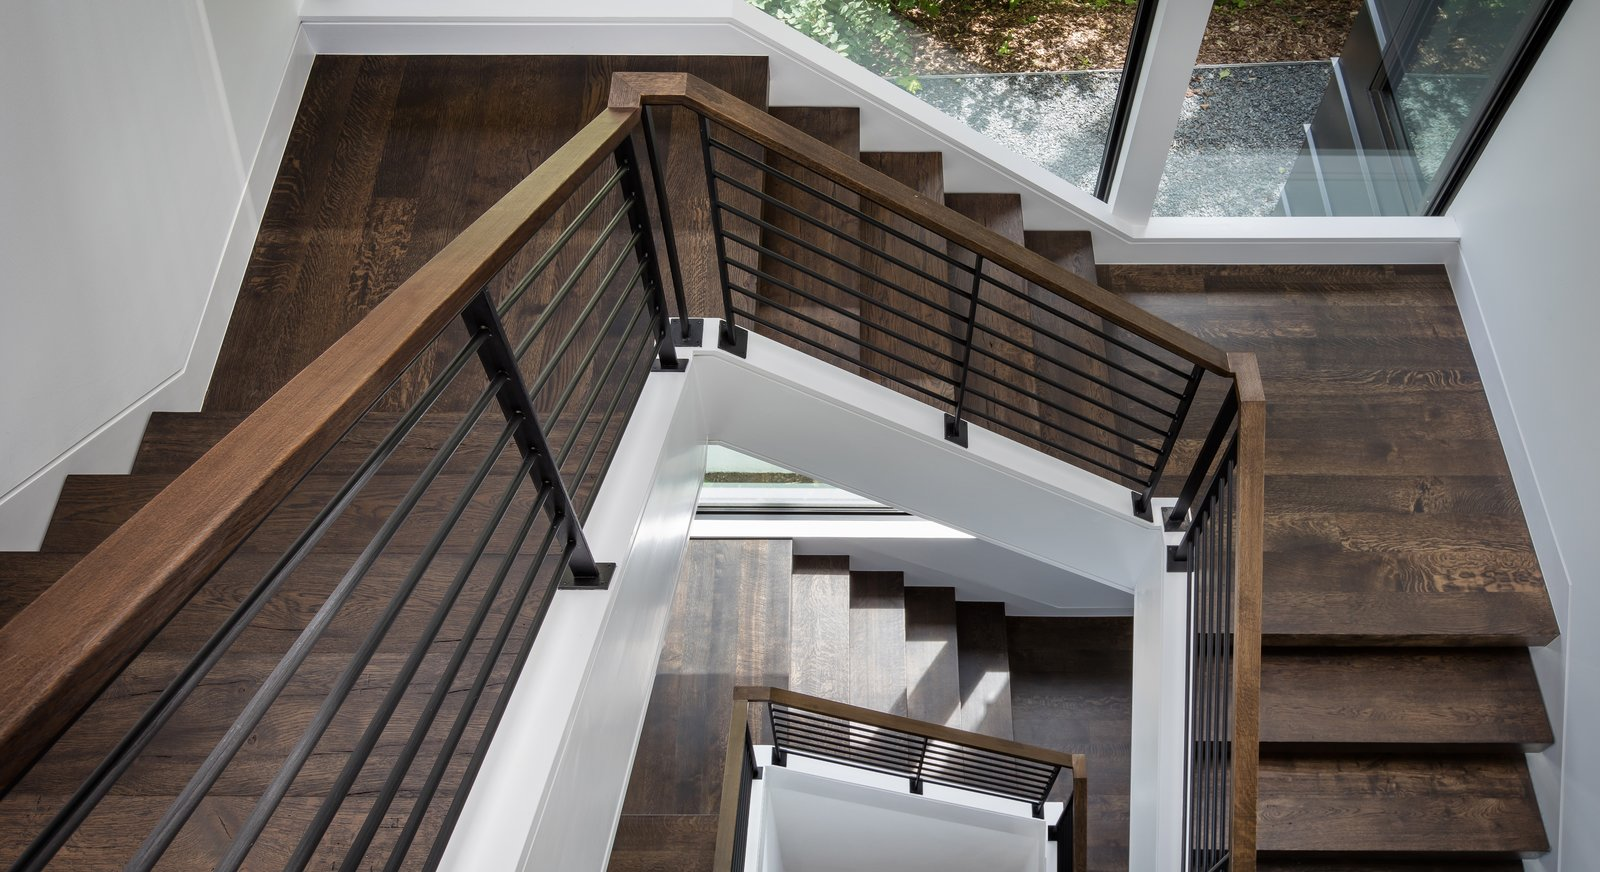 Tagged: Staircase, Wood Tread, and Metal Railing. Calhoun Pavilions Residence by Peterssen/Keller Architecture